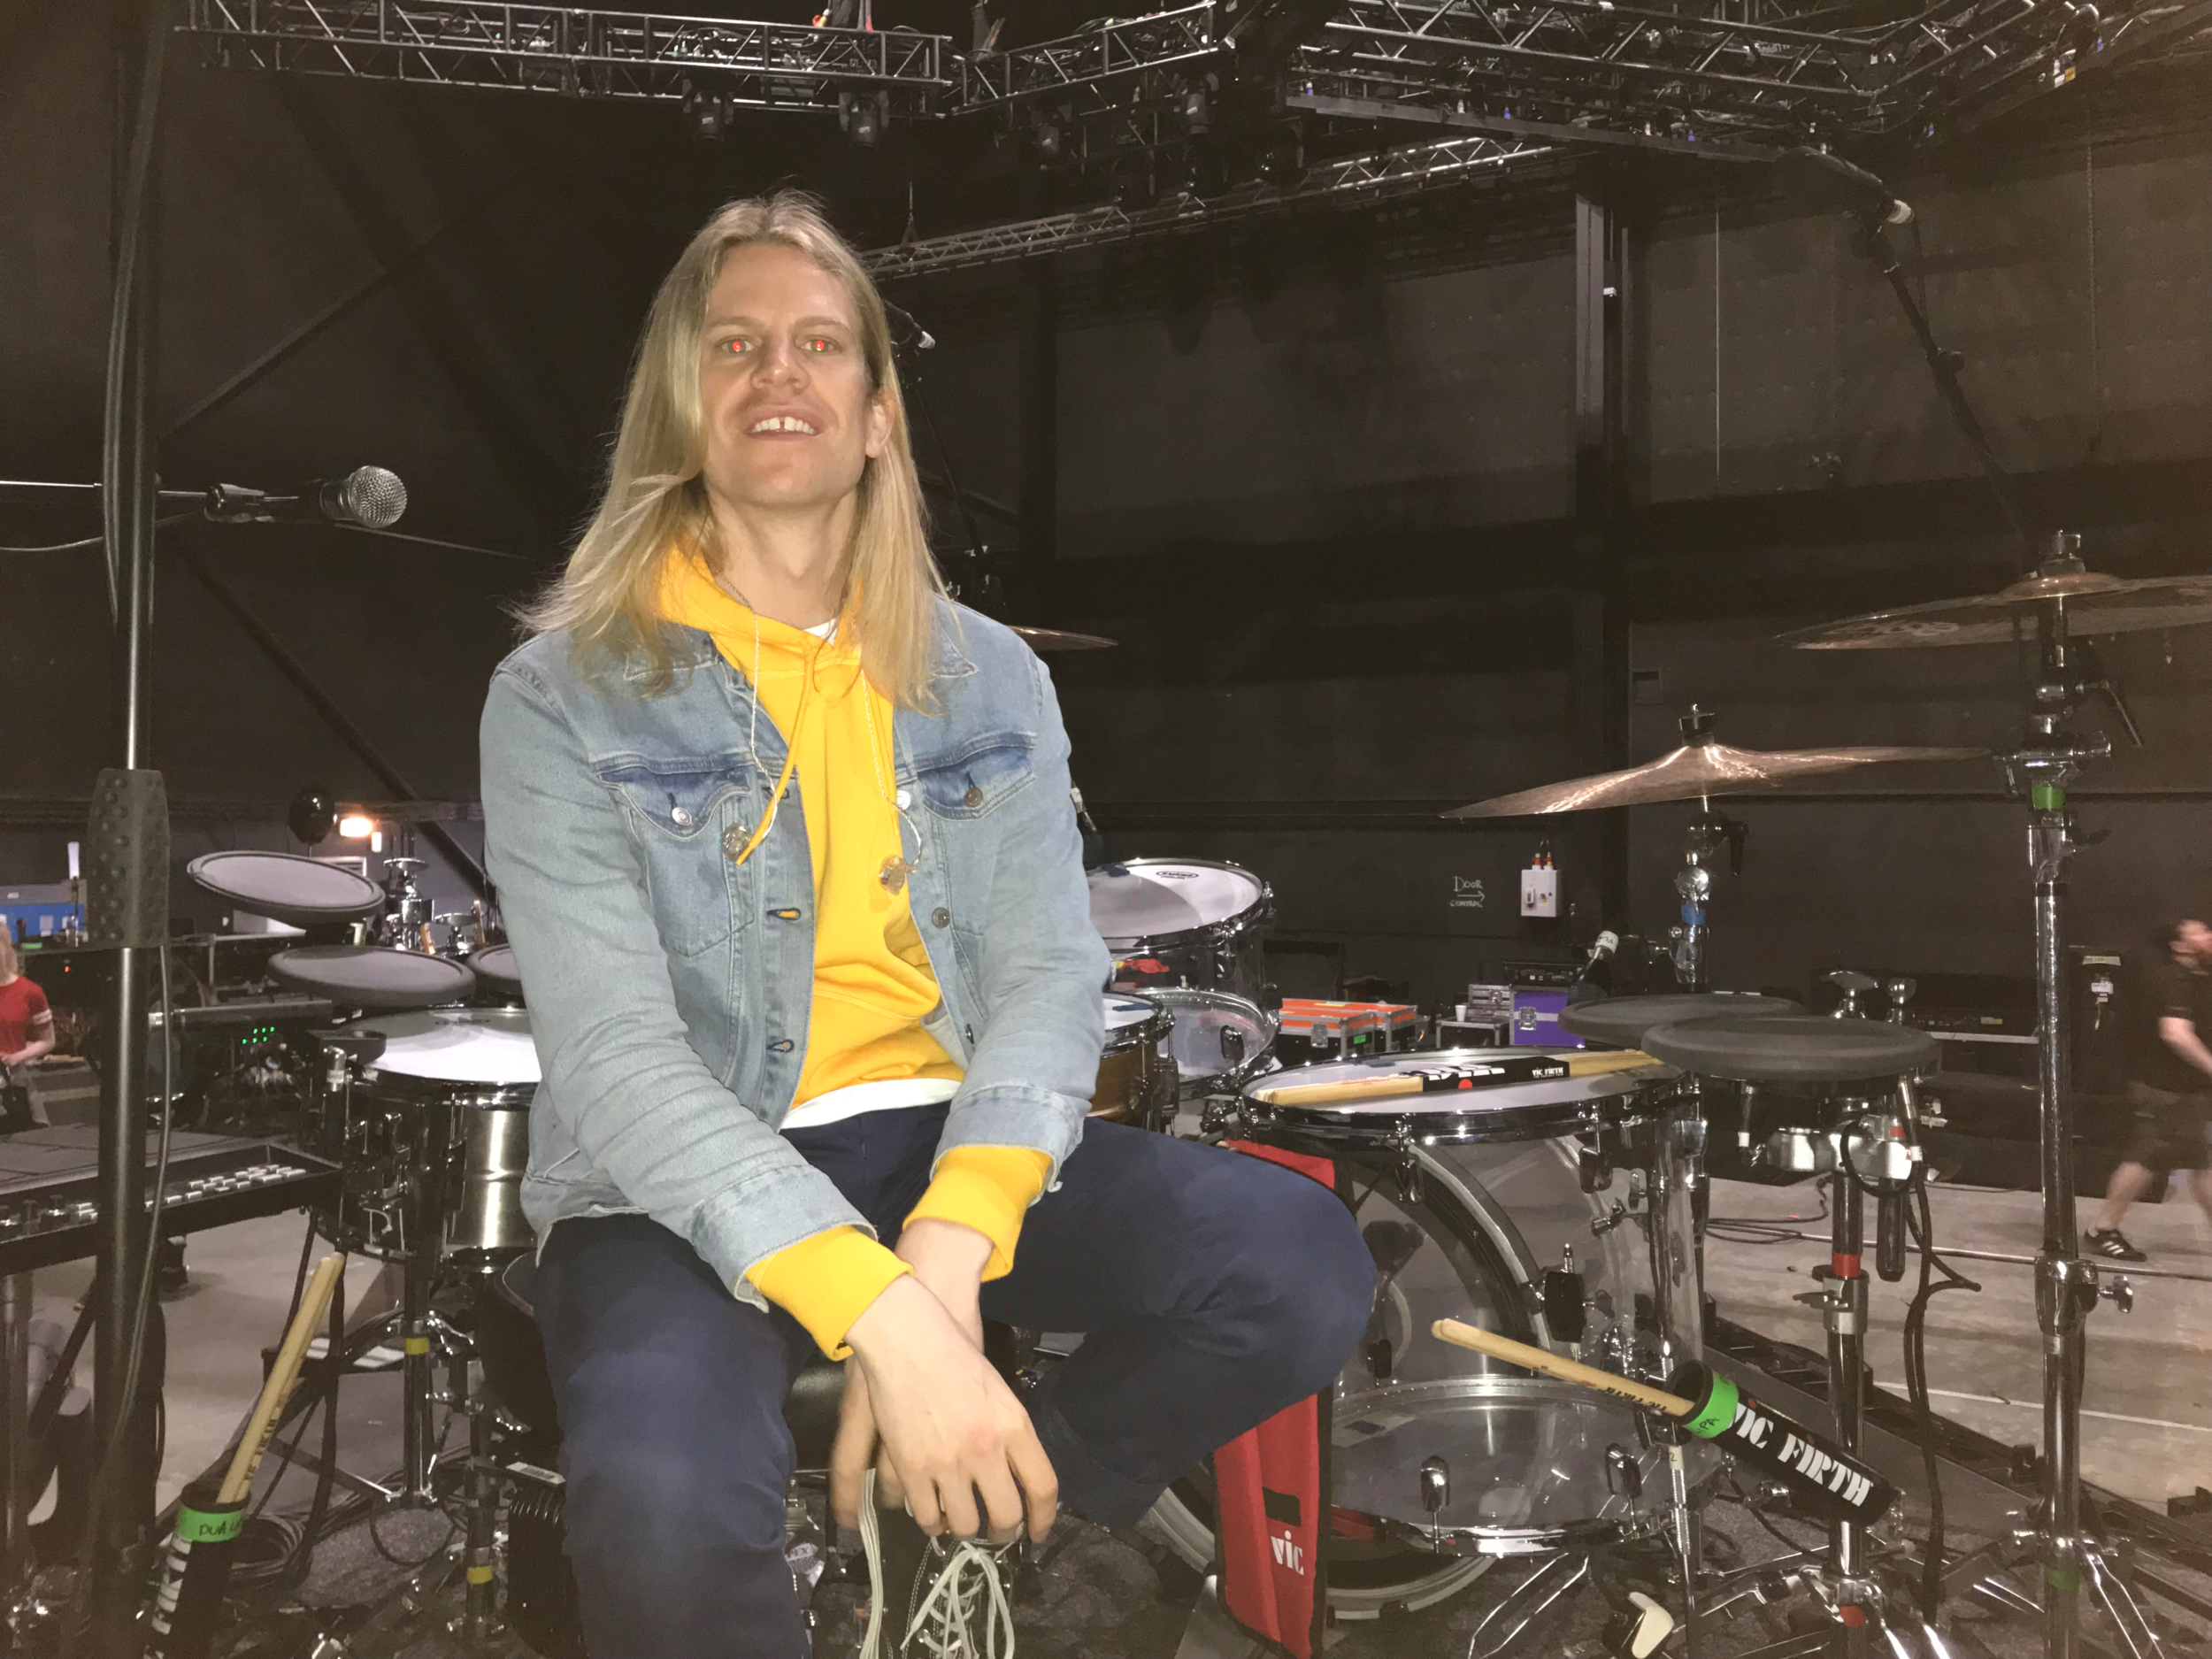 Dua Lipa Production Rehearsals - Another bit of exciting news.... I went on a day out with Martin Potts (Artist Relations Paiste UK), over to Millennium Studios where Dua Lipa's production rehearsals were taking place. Will Bowerman, Dua's drummer and MD, was prepping for the UK leg of the tour and Paiste had supplied him with a new set of cymbals. We were invited along to basically ensure that Will had everything sorted, as well as capturing some promo content for Paiste UK. We recorded a kit walkthrough with Will, shot a load of pictures and videos and then stuck around to hear the band rehearse.It was a real privilege to be asked to join Martin for the day and meet Dua Lipa's team!Will was also kind enough to invite us along to the Birmingham show, which was absolutely killer!